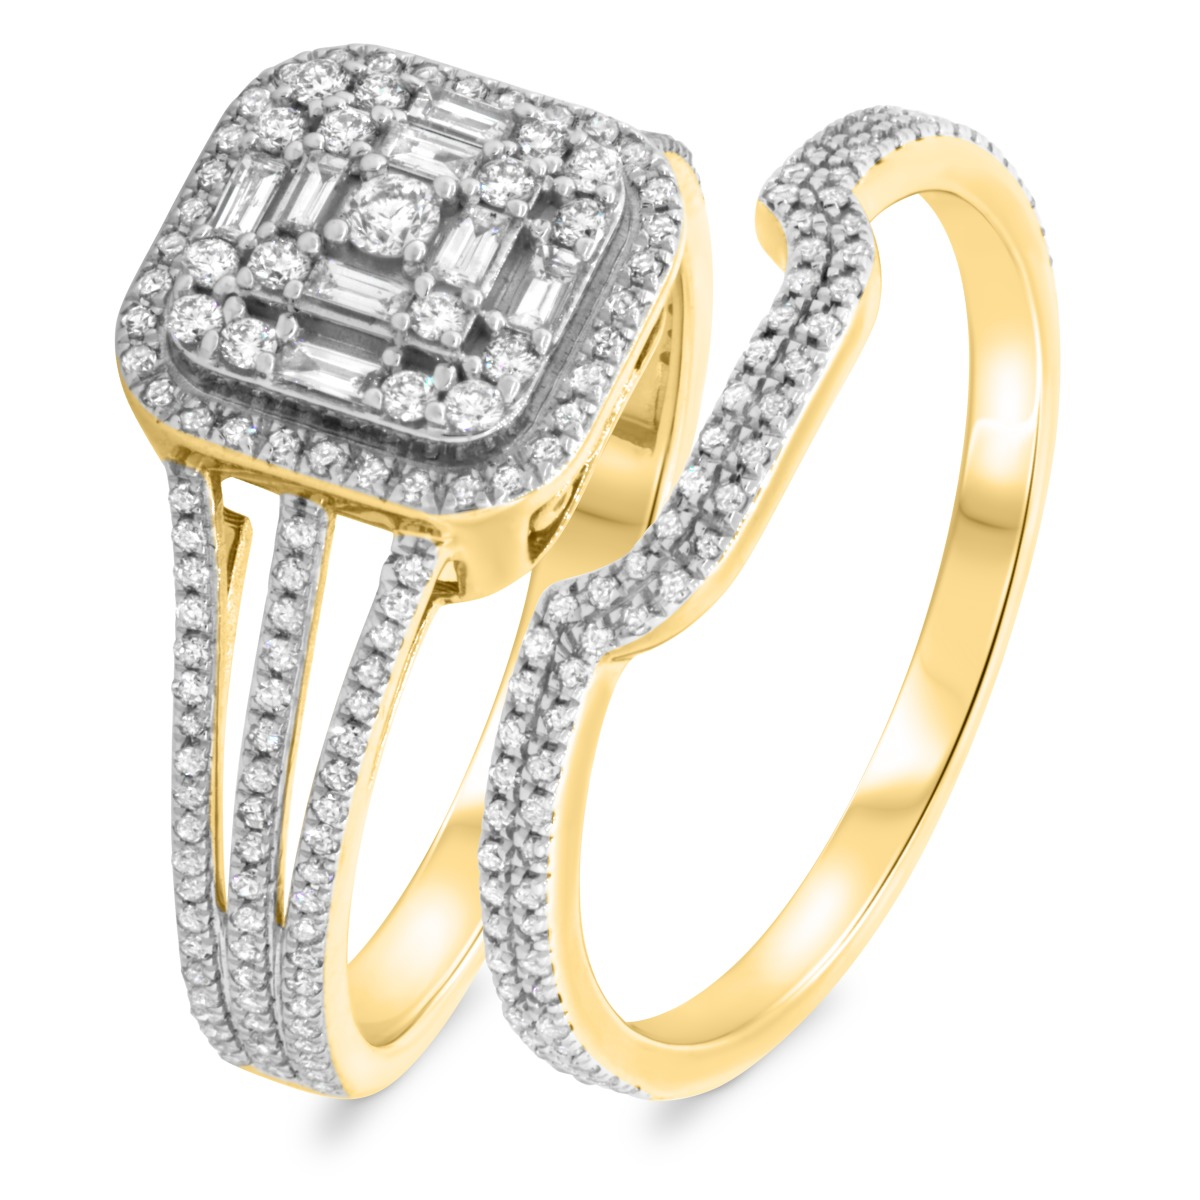 7/8 Carat T.W. Diamond Matching Bridal Ring Set 10K Yellow Gold